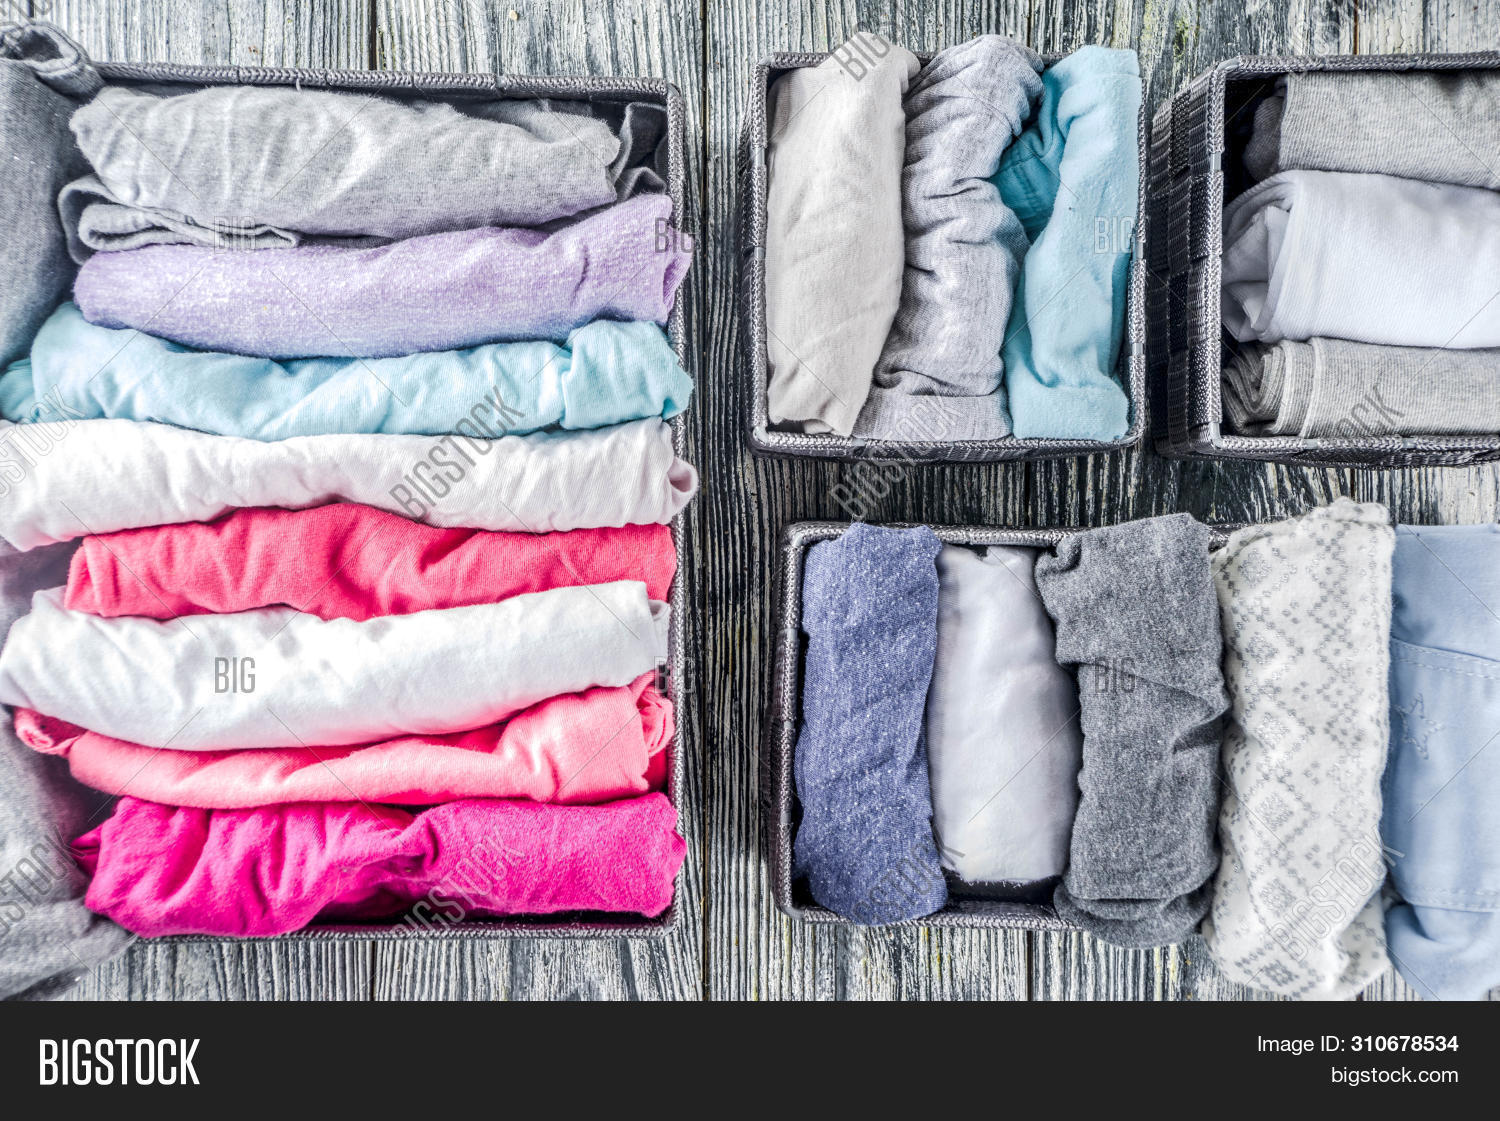 House Cleaning Concept. Vertical Tidying Up Storage. Marie Kondo Tidying Method. Neatly Folded Cloth